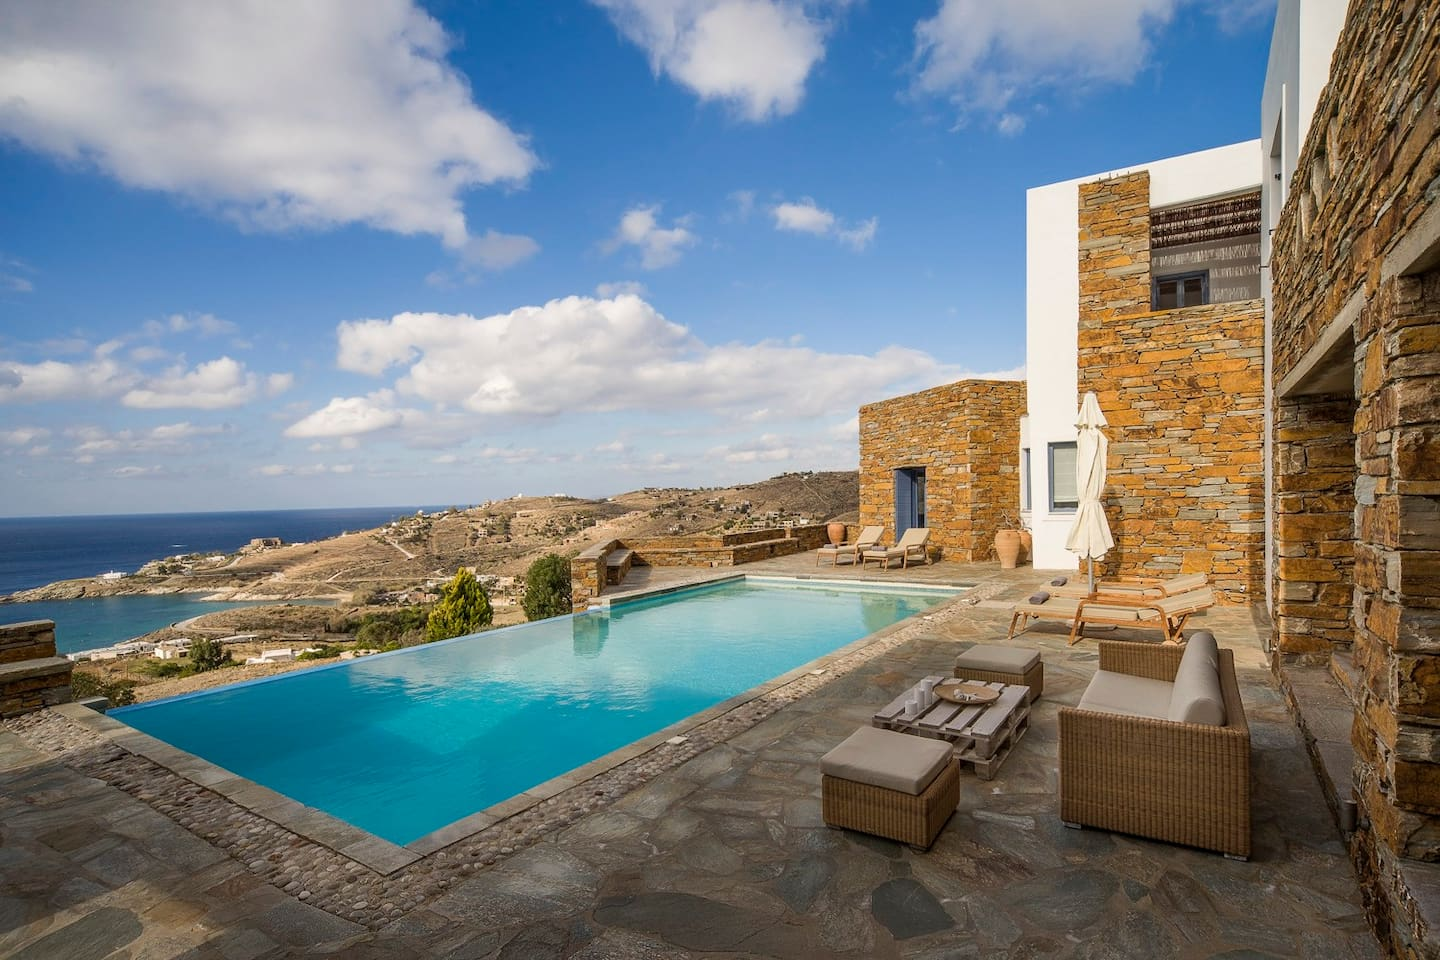 The outdoor spaces feature the classic elements of Cycladic design -think whitewashed walls and local stone